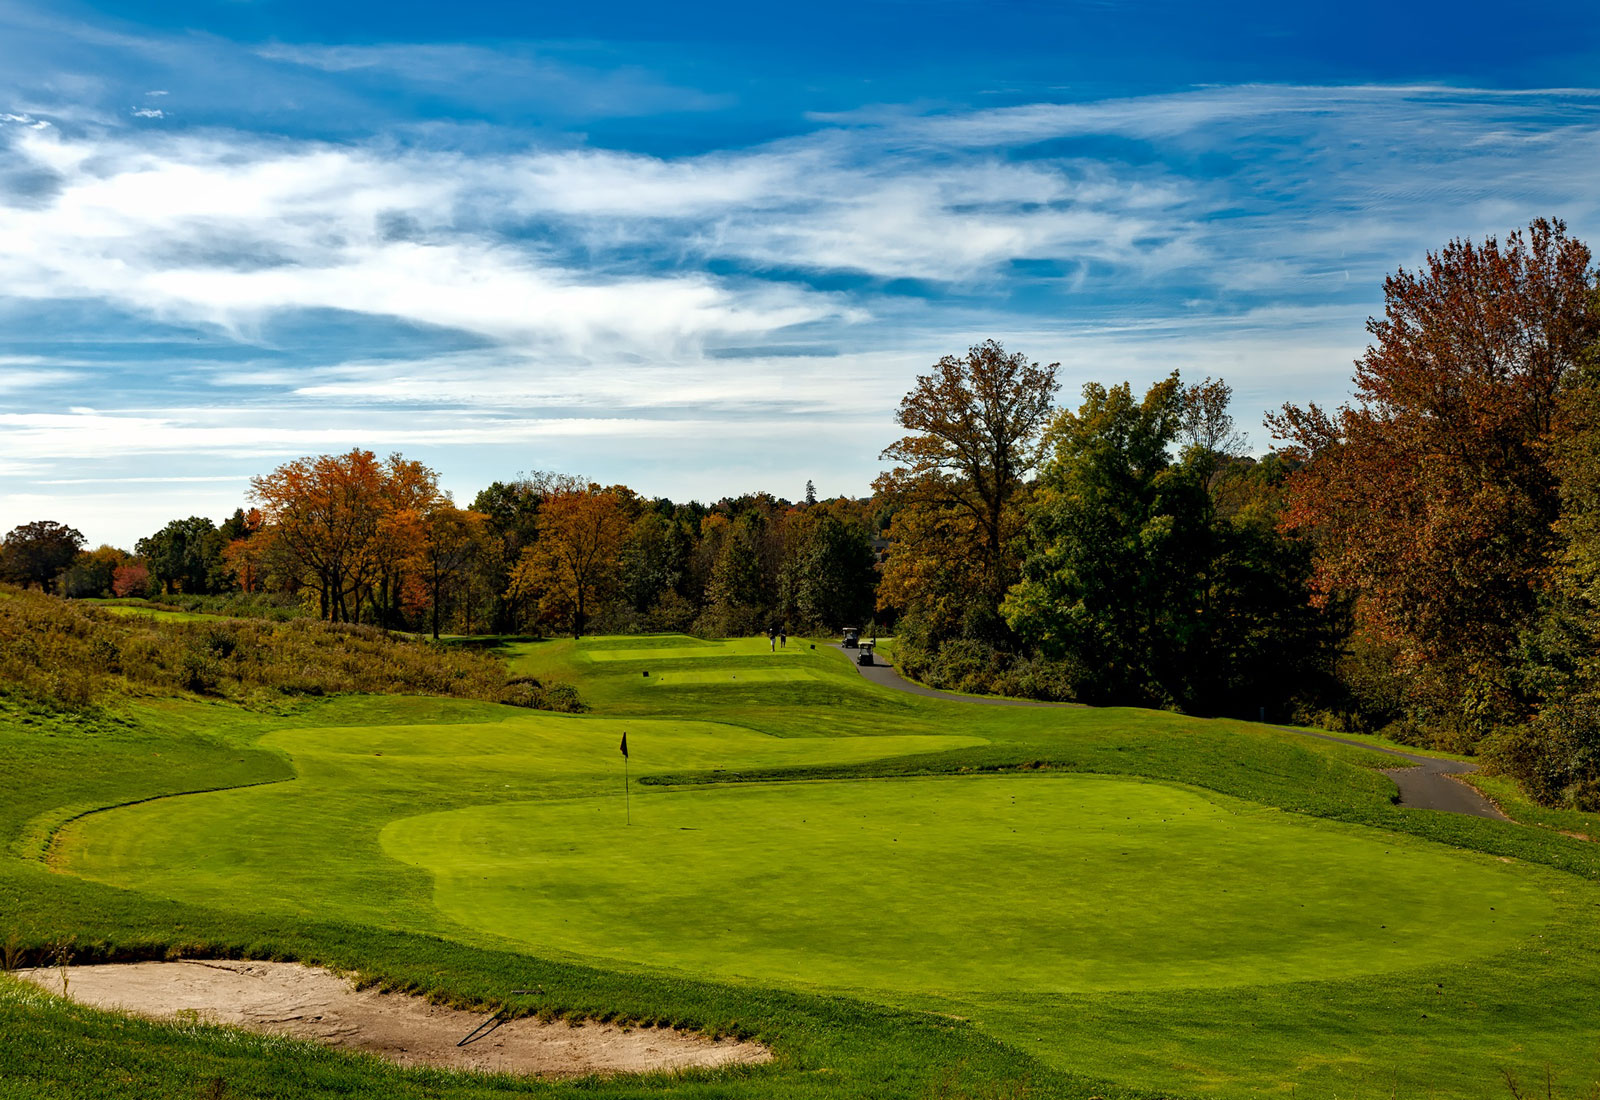 Locations of the US Open will have beautiful foliage